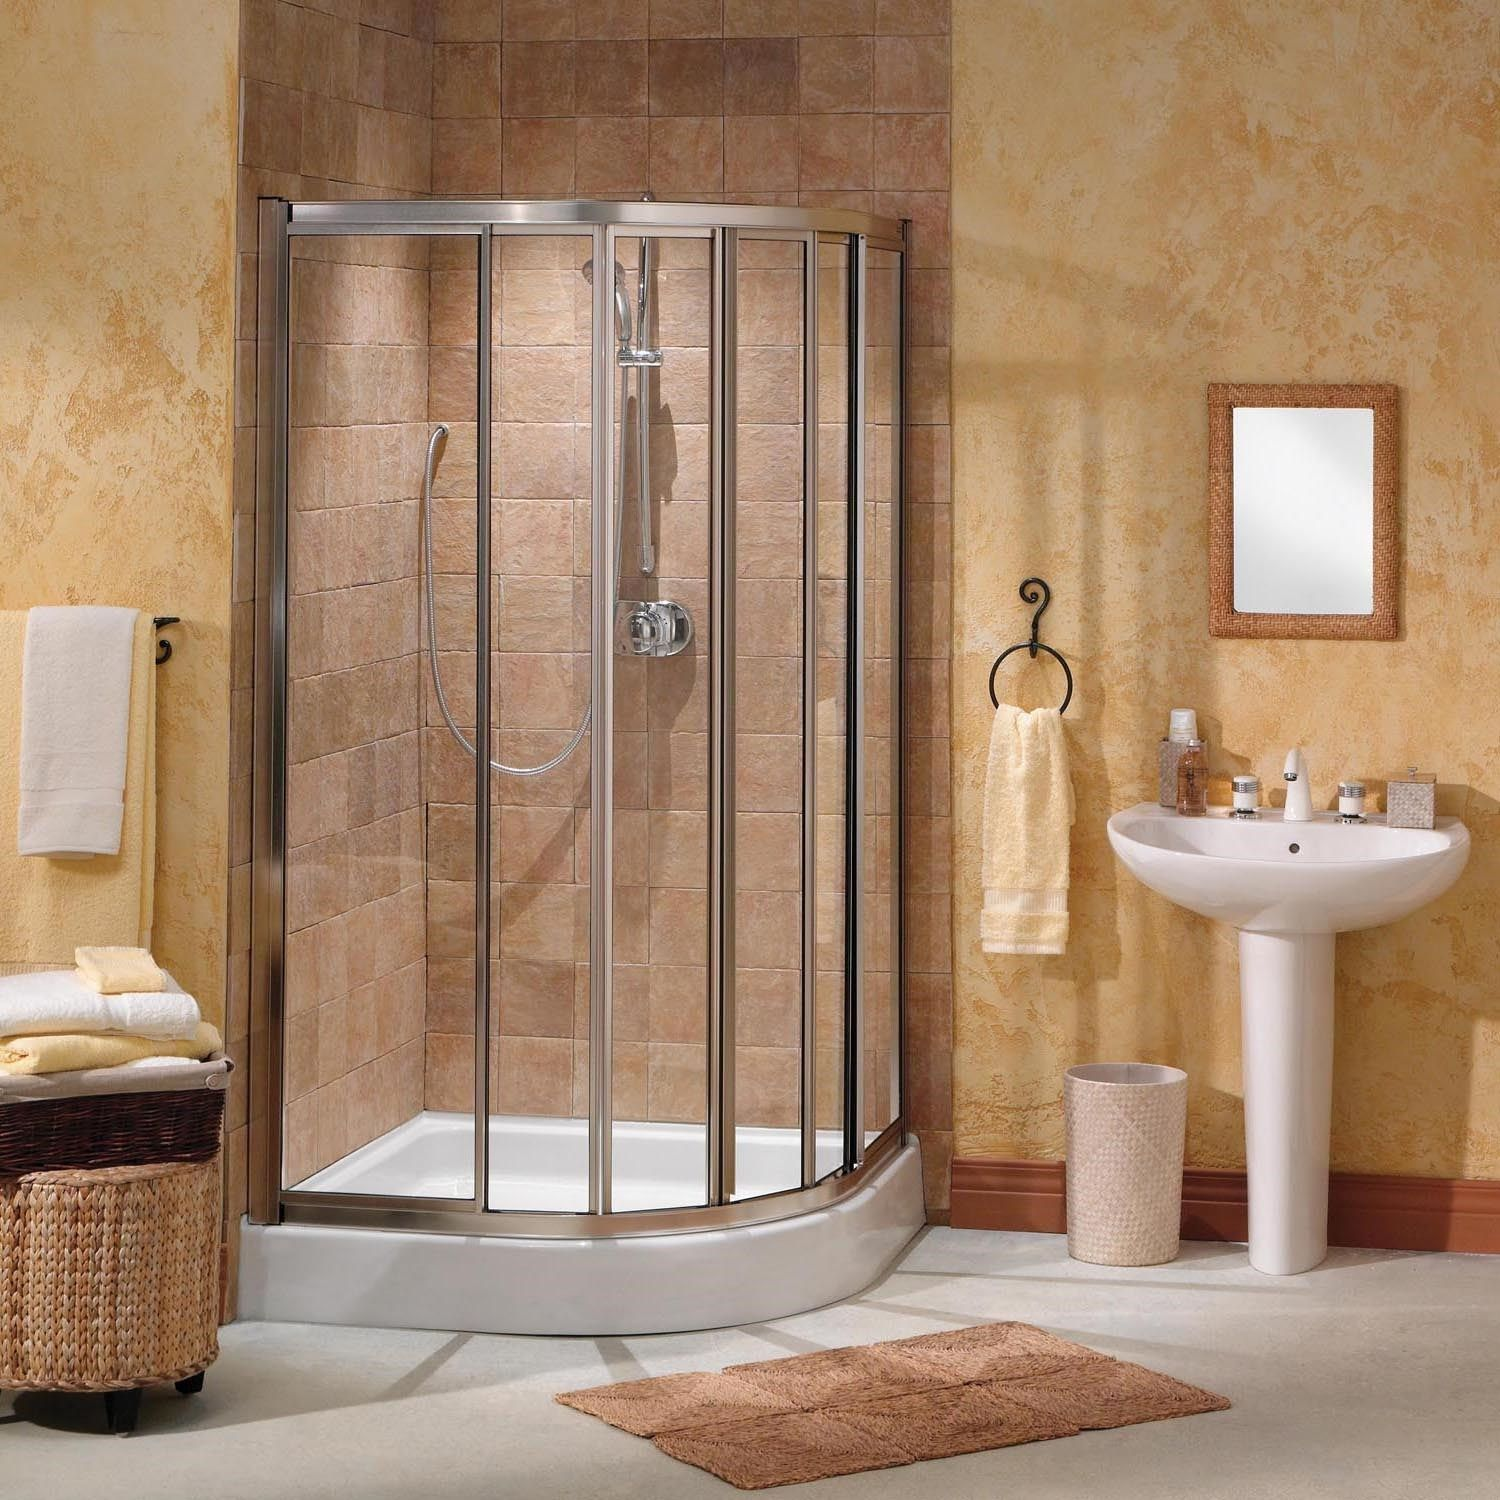 Maax Glass Shower Door Sweep | Glass Doors | Pinterest | Door sweep ...